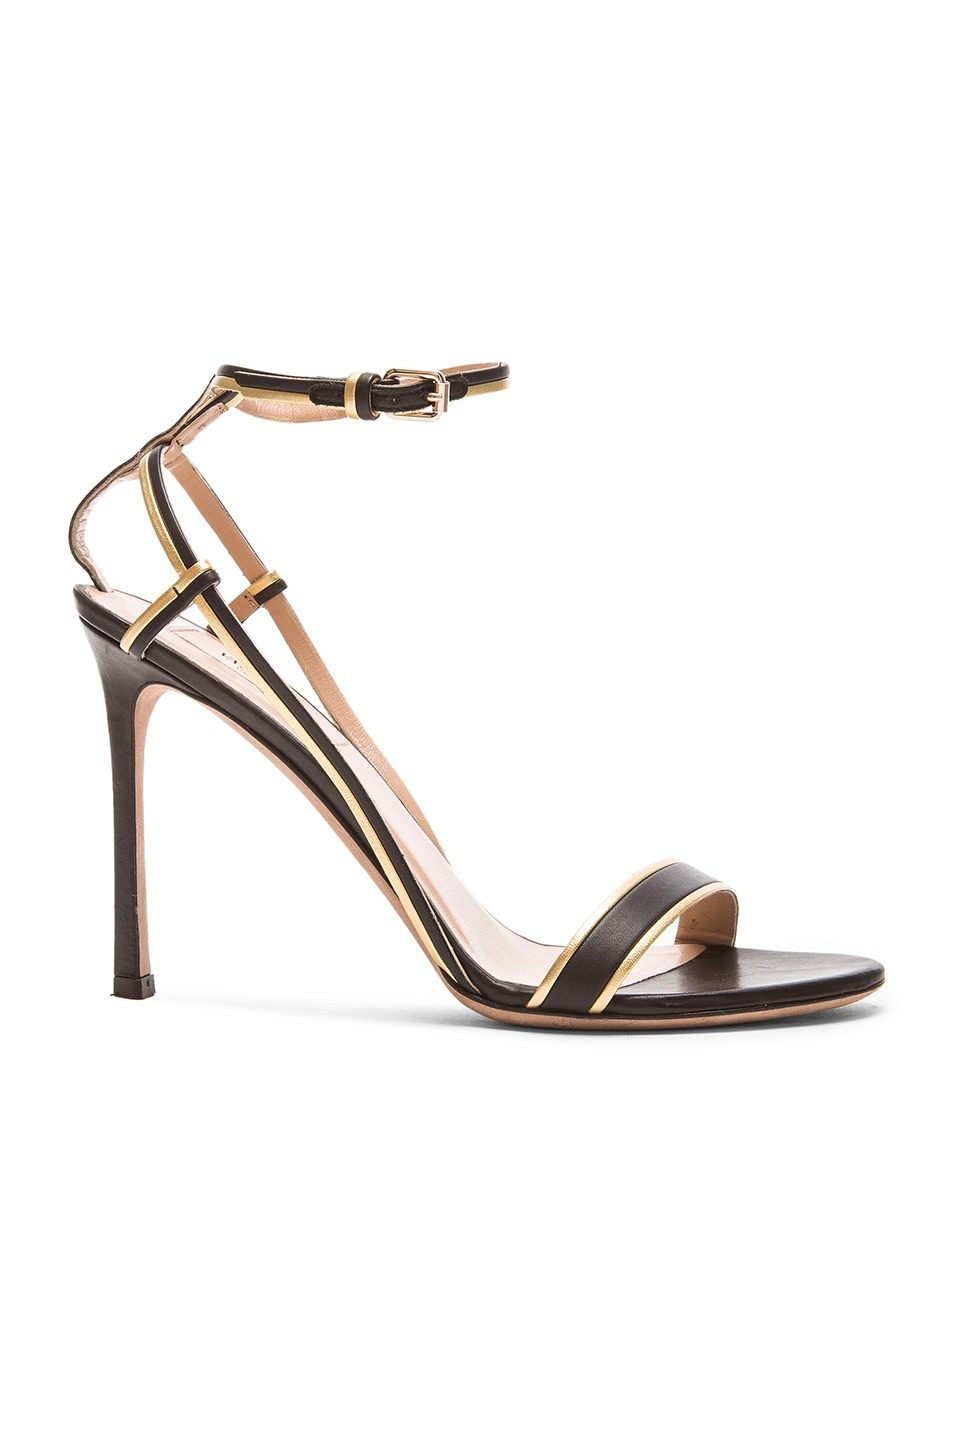 Image 1 of Valentino Emilie Leather T.100 Sandals in Black & Gold